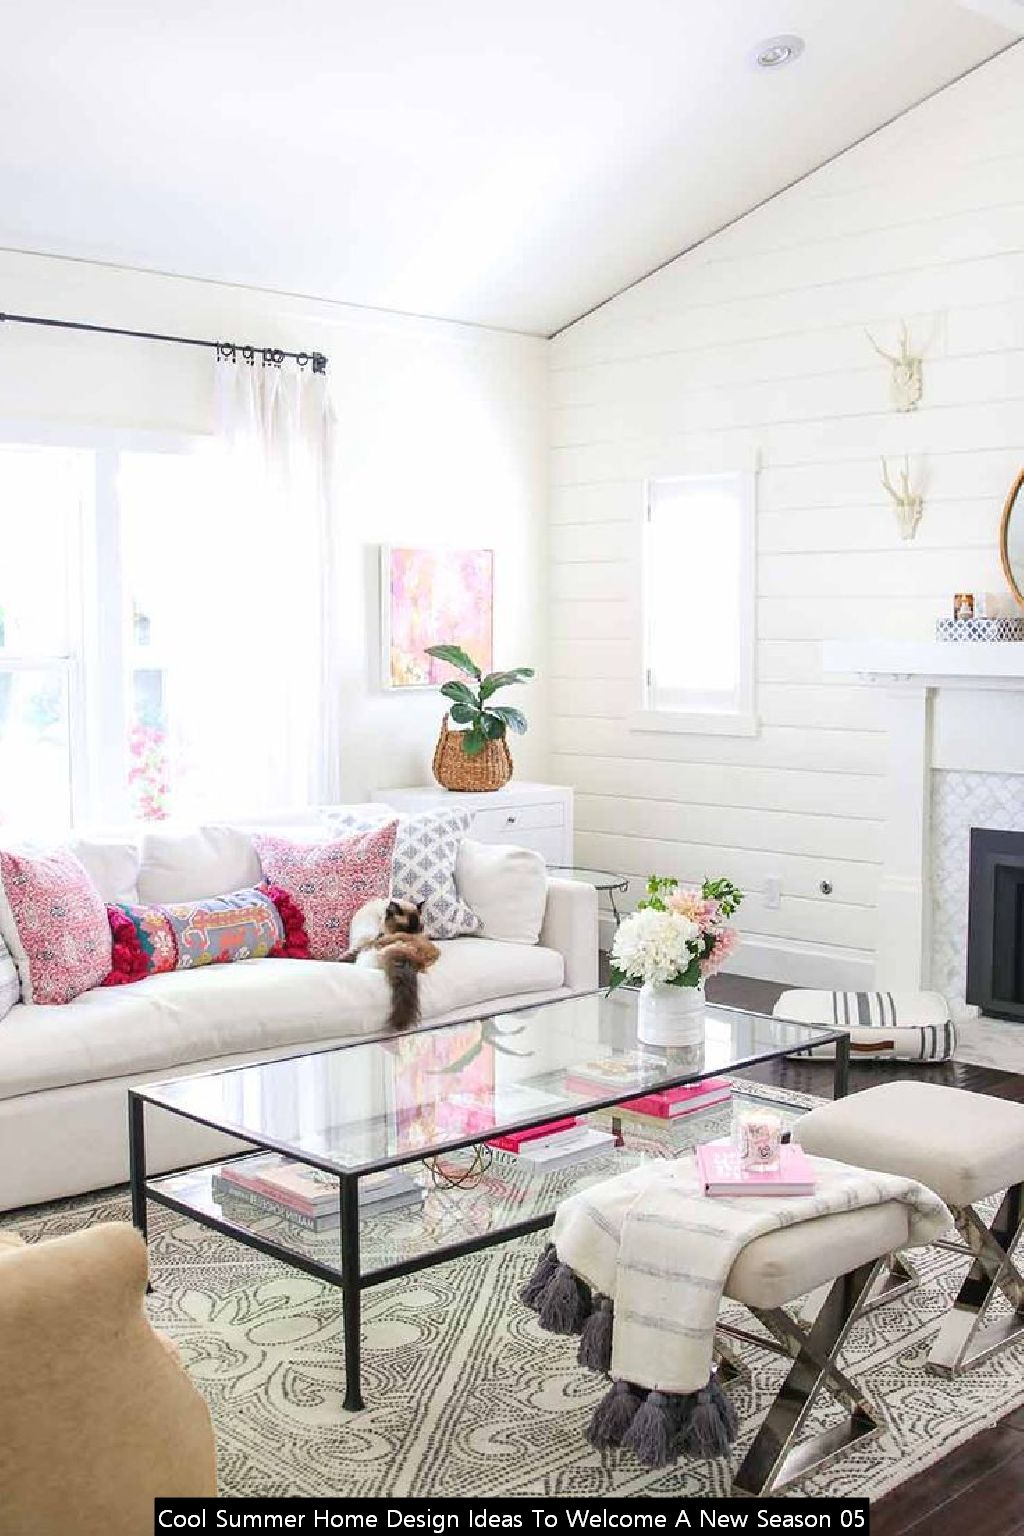 Cool Summer Home Design Ideas To Welcome A New Season 05